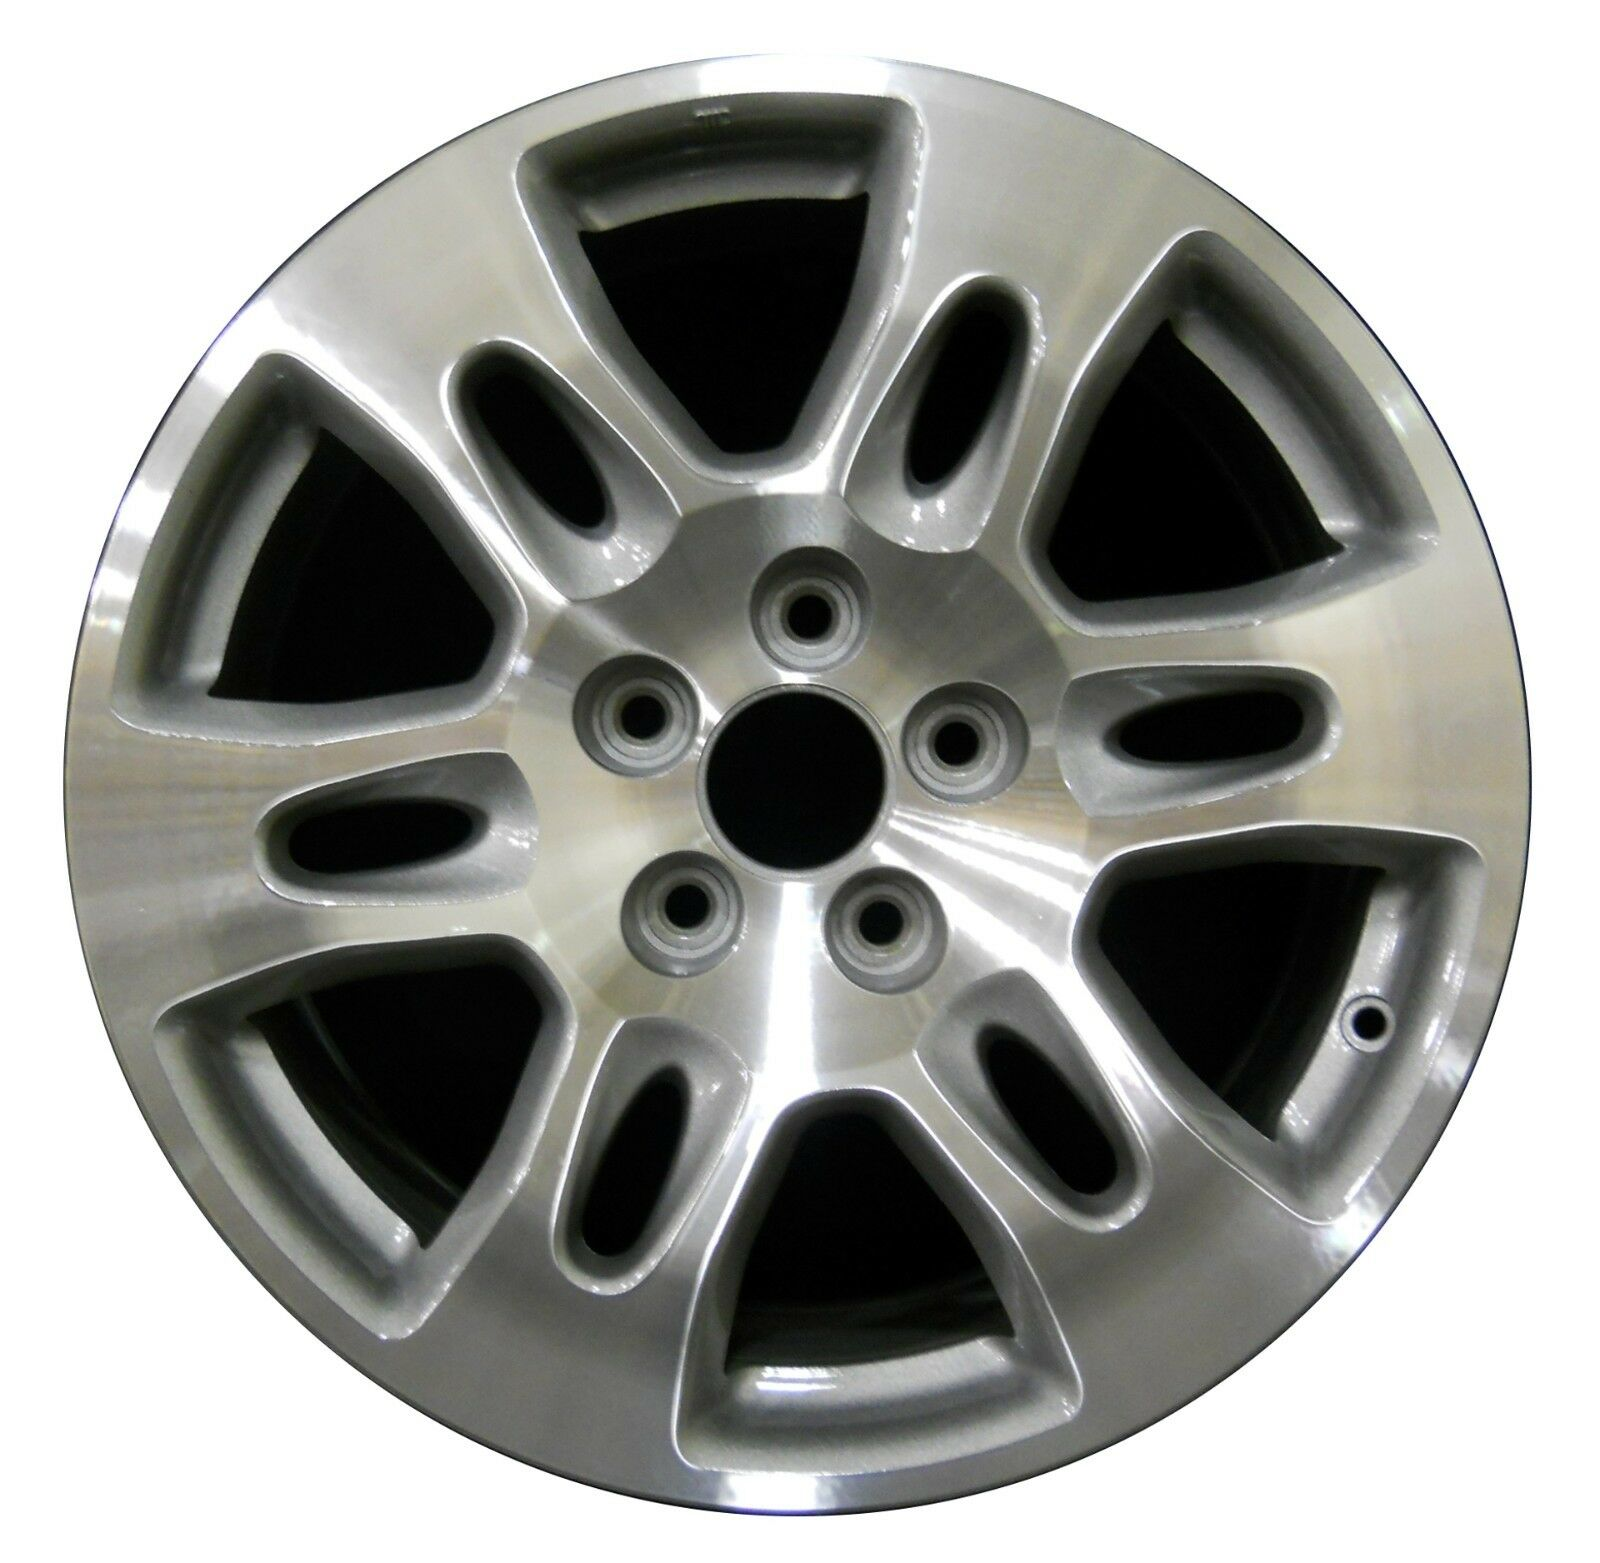 Used Acura MDX Wheels And Hubcaps For Sale - Acura mdx oem wheels